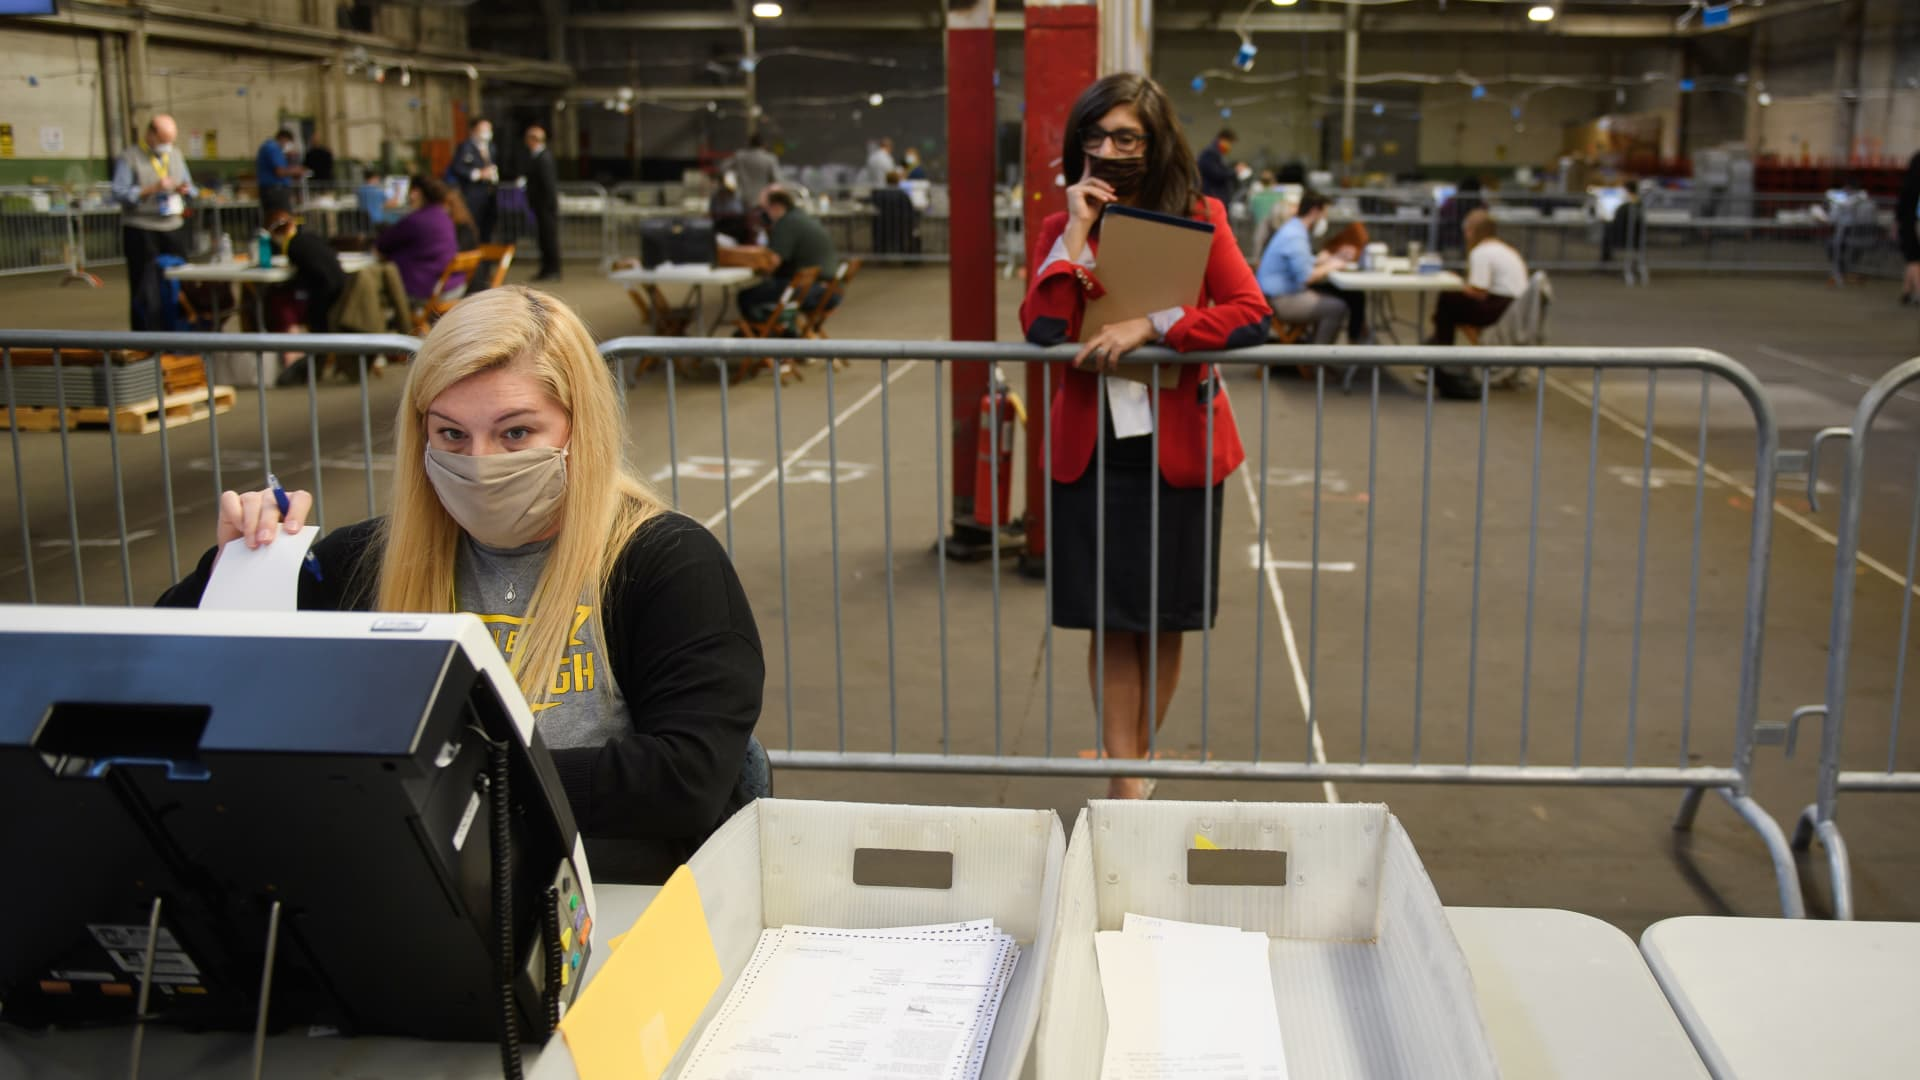 A poll watcher monitors the counting of ballots at the Allegheny County elections warehouse on November 6, 2020 in Pittsburgh, Pennsylvania.